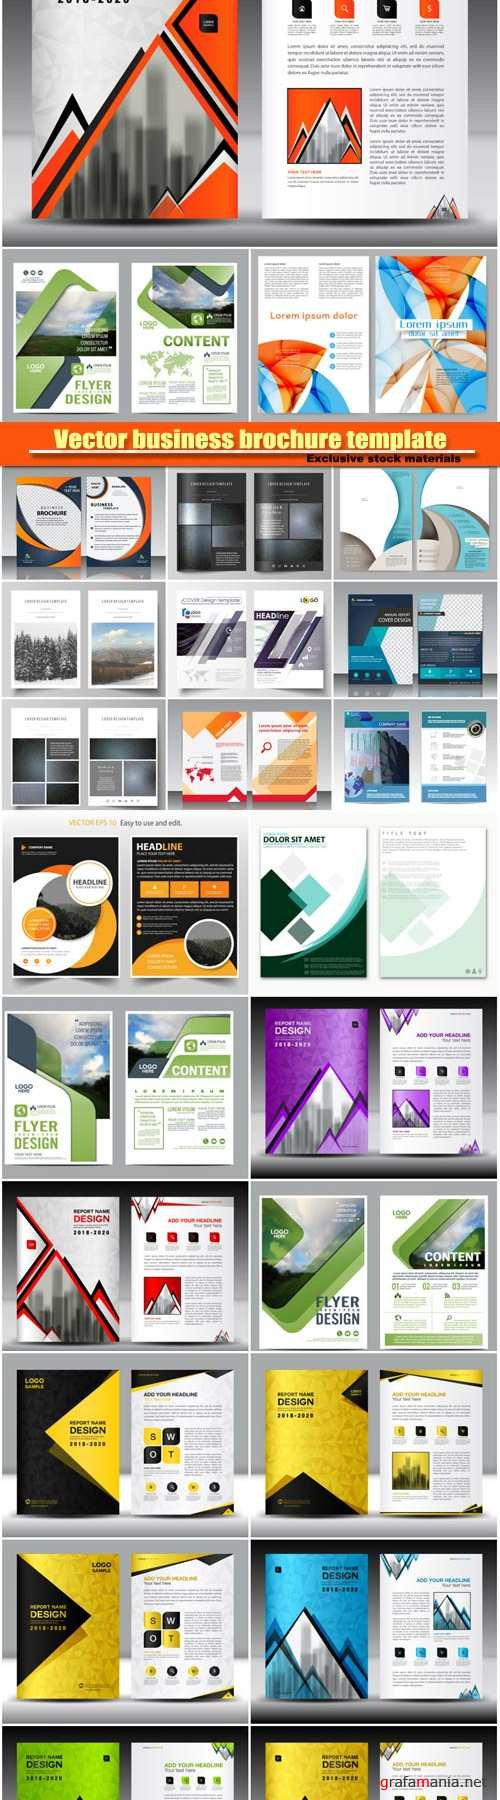 Vector business brochure template #11